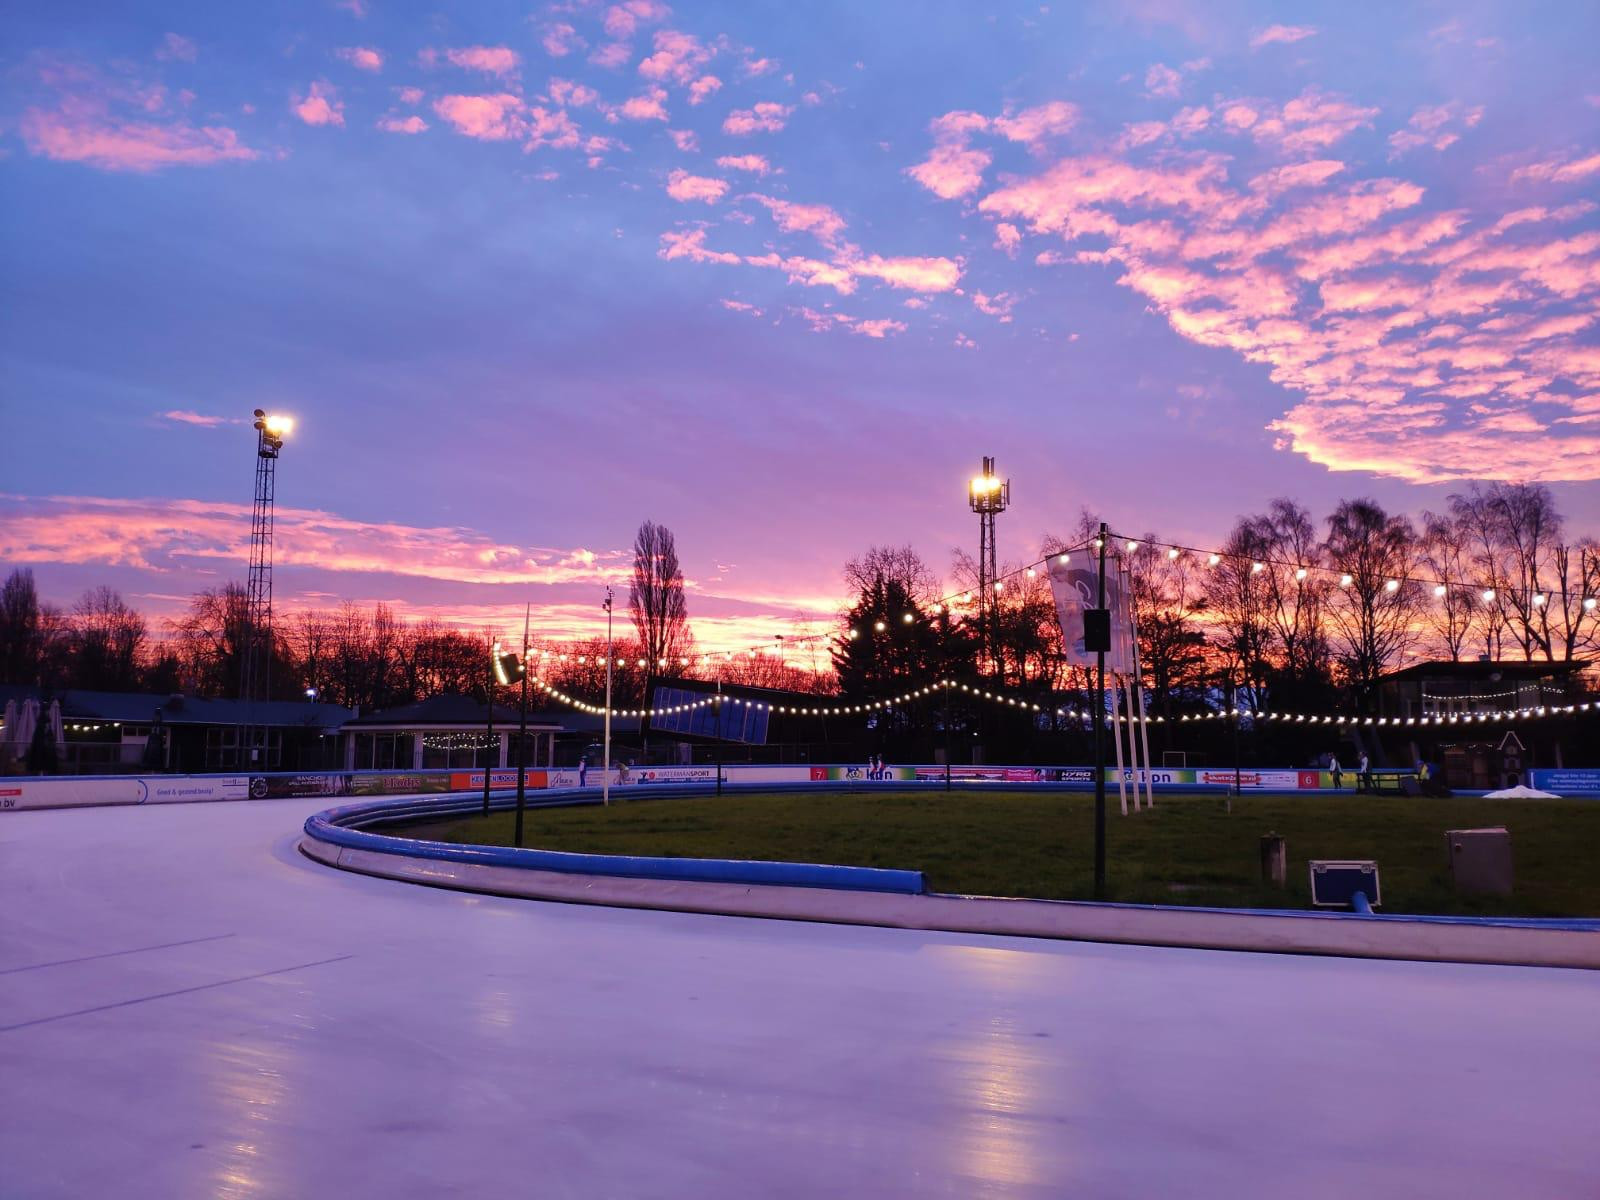 The FISU World University Speed Skating Championships are set to take place at the Jaap Eden ice rink in Amsterdam ©FISU